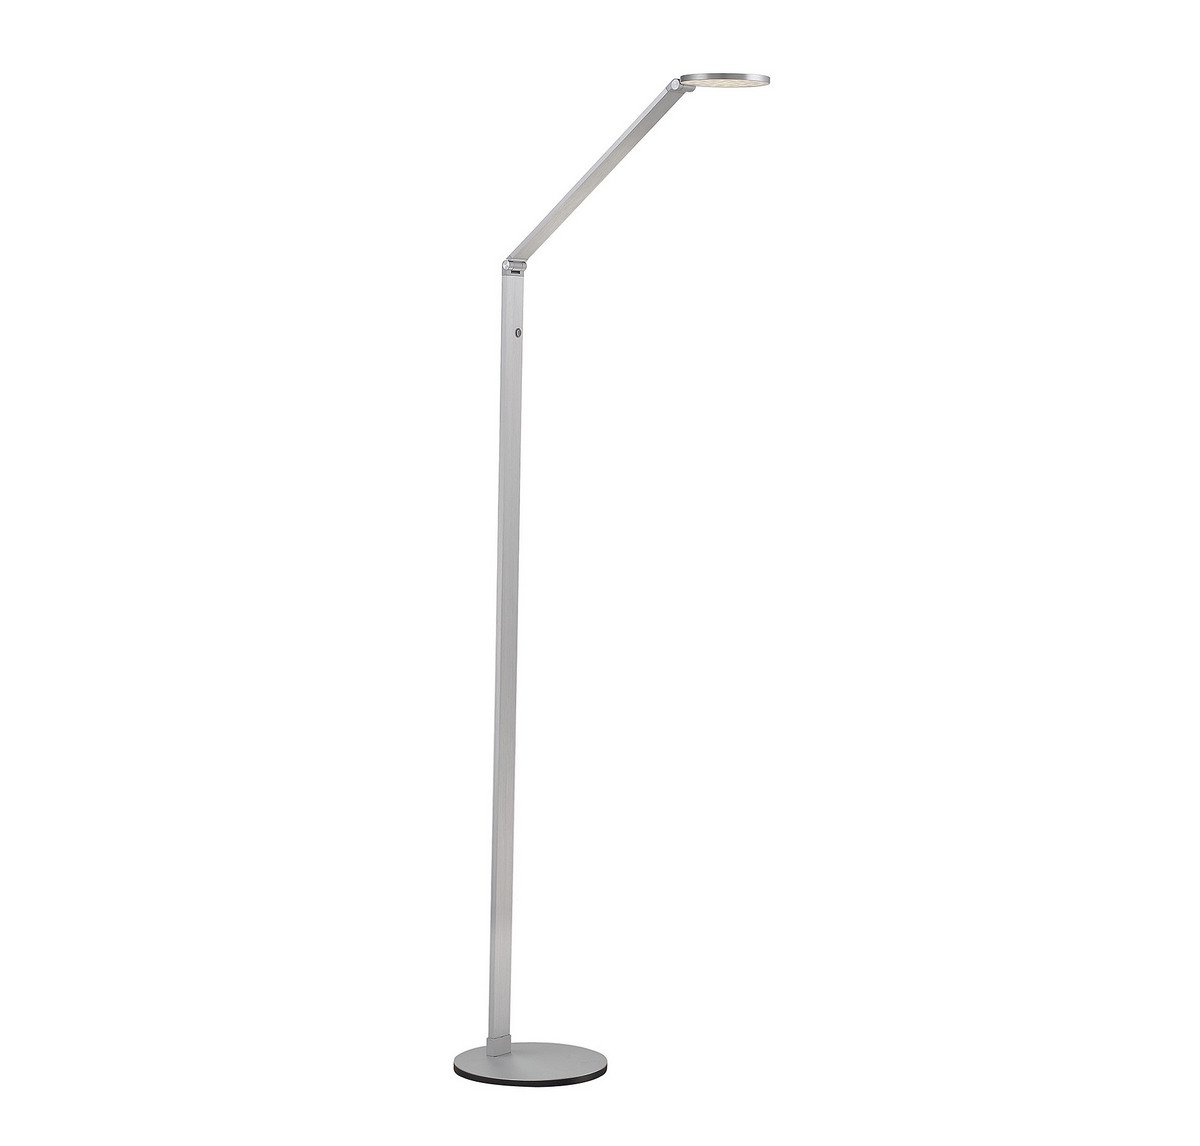 Savoy House 4-2020-NA Fusion LED Floor Lamp with Dimmer in Natural Aluminum